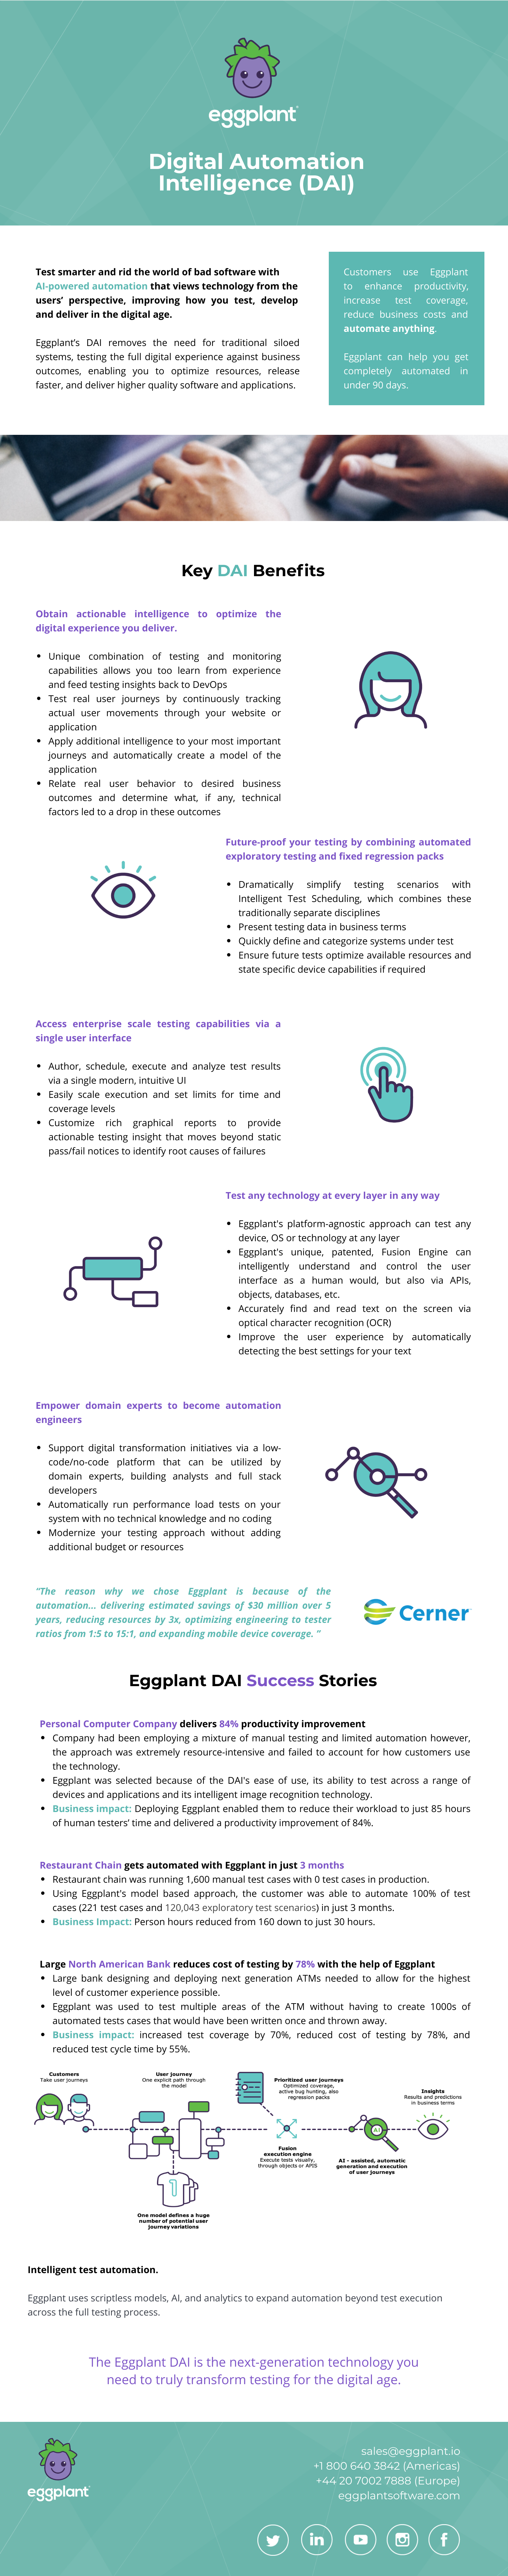 Digital Automation Intelligence Product Guide